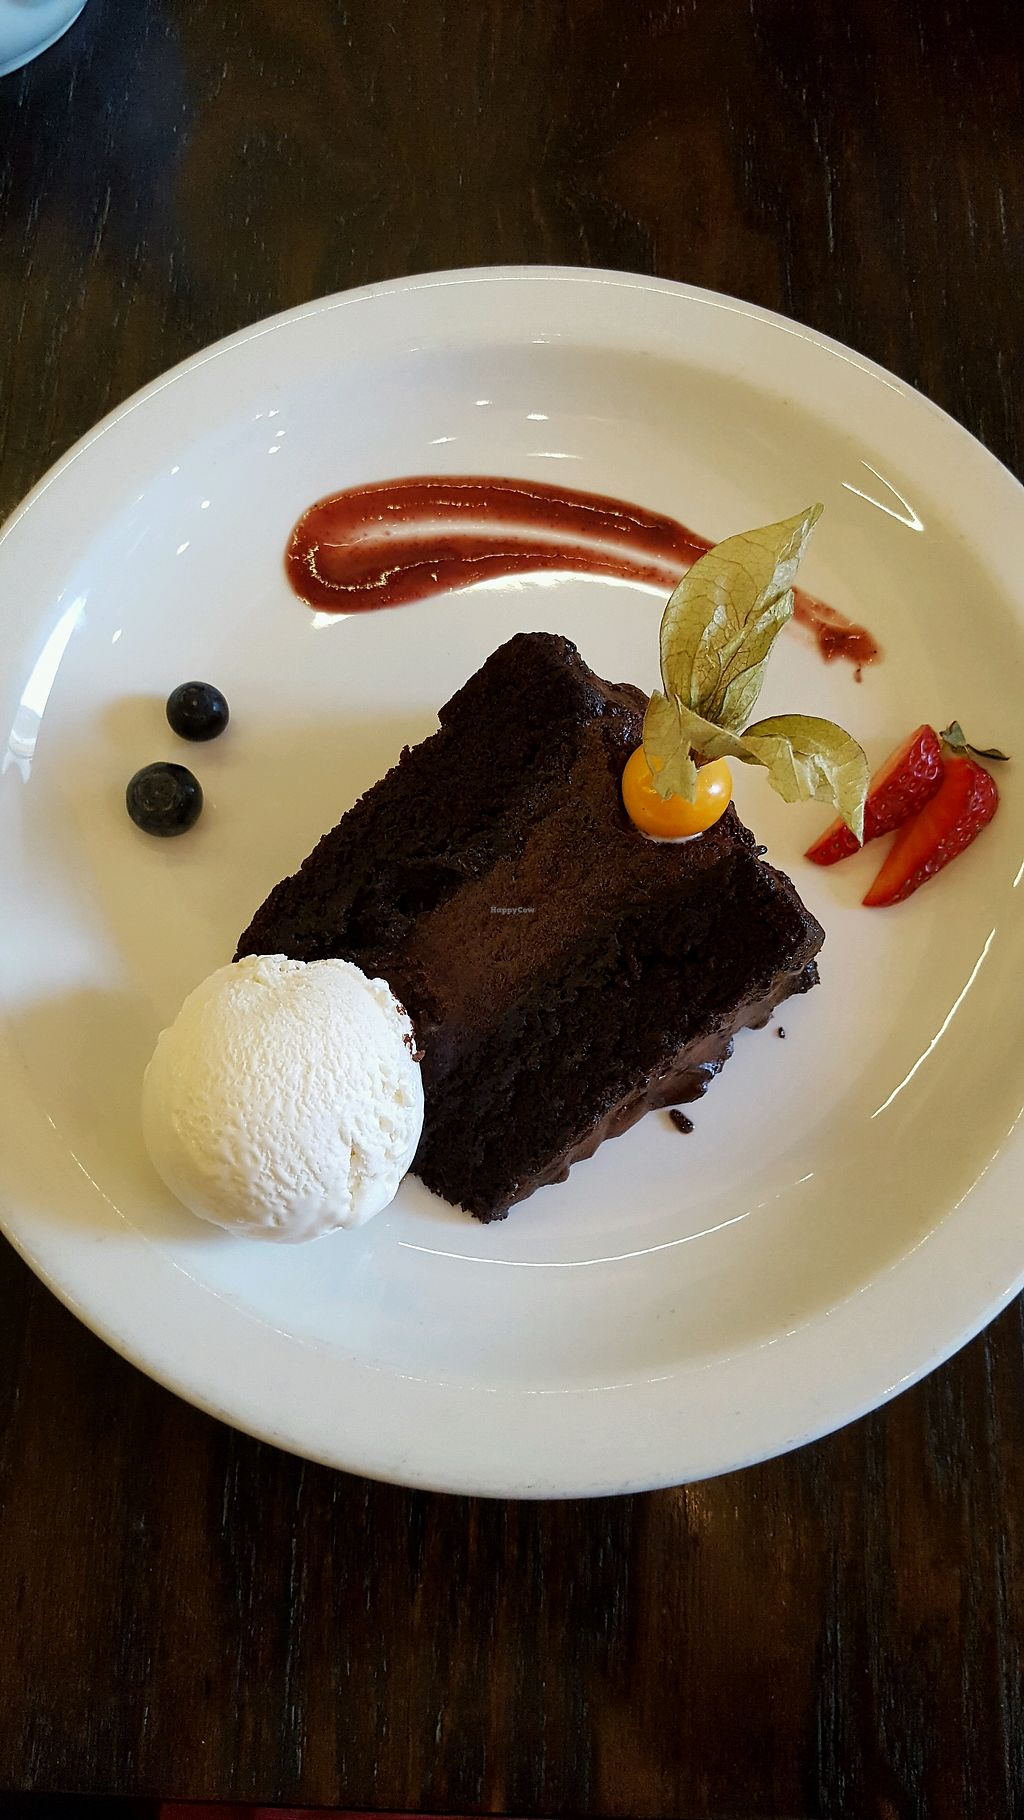 "Photo of 222 Vegan Cuisine  by <a href=""/members/profile/daria81"">daria81</a> <br/>chocolate gateau (best cake i have ever eaten!) <br/> May 17, 2018  - <a href='/contact/abuse/image/4655/401103'>Report</a>"